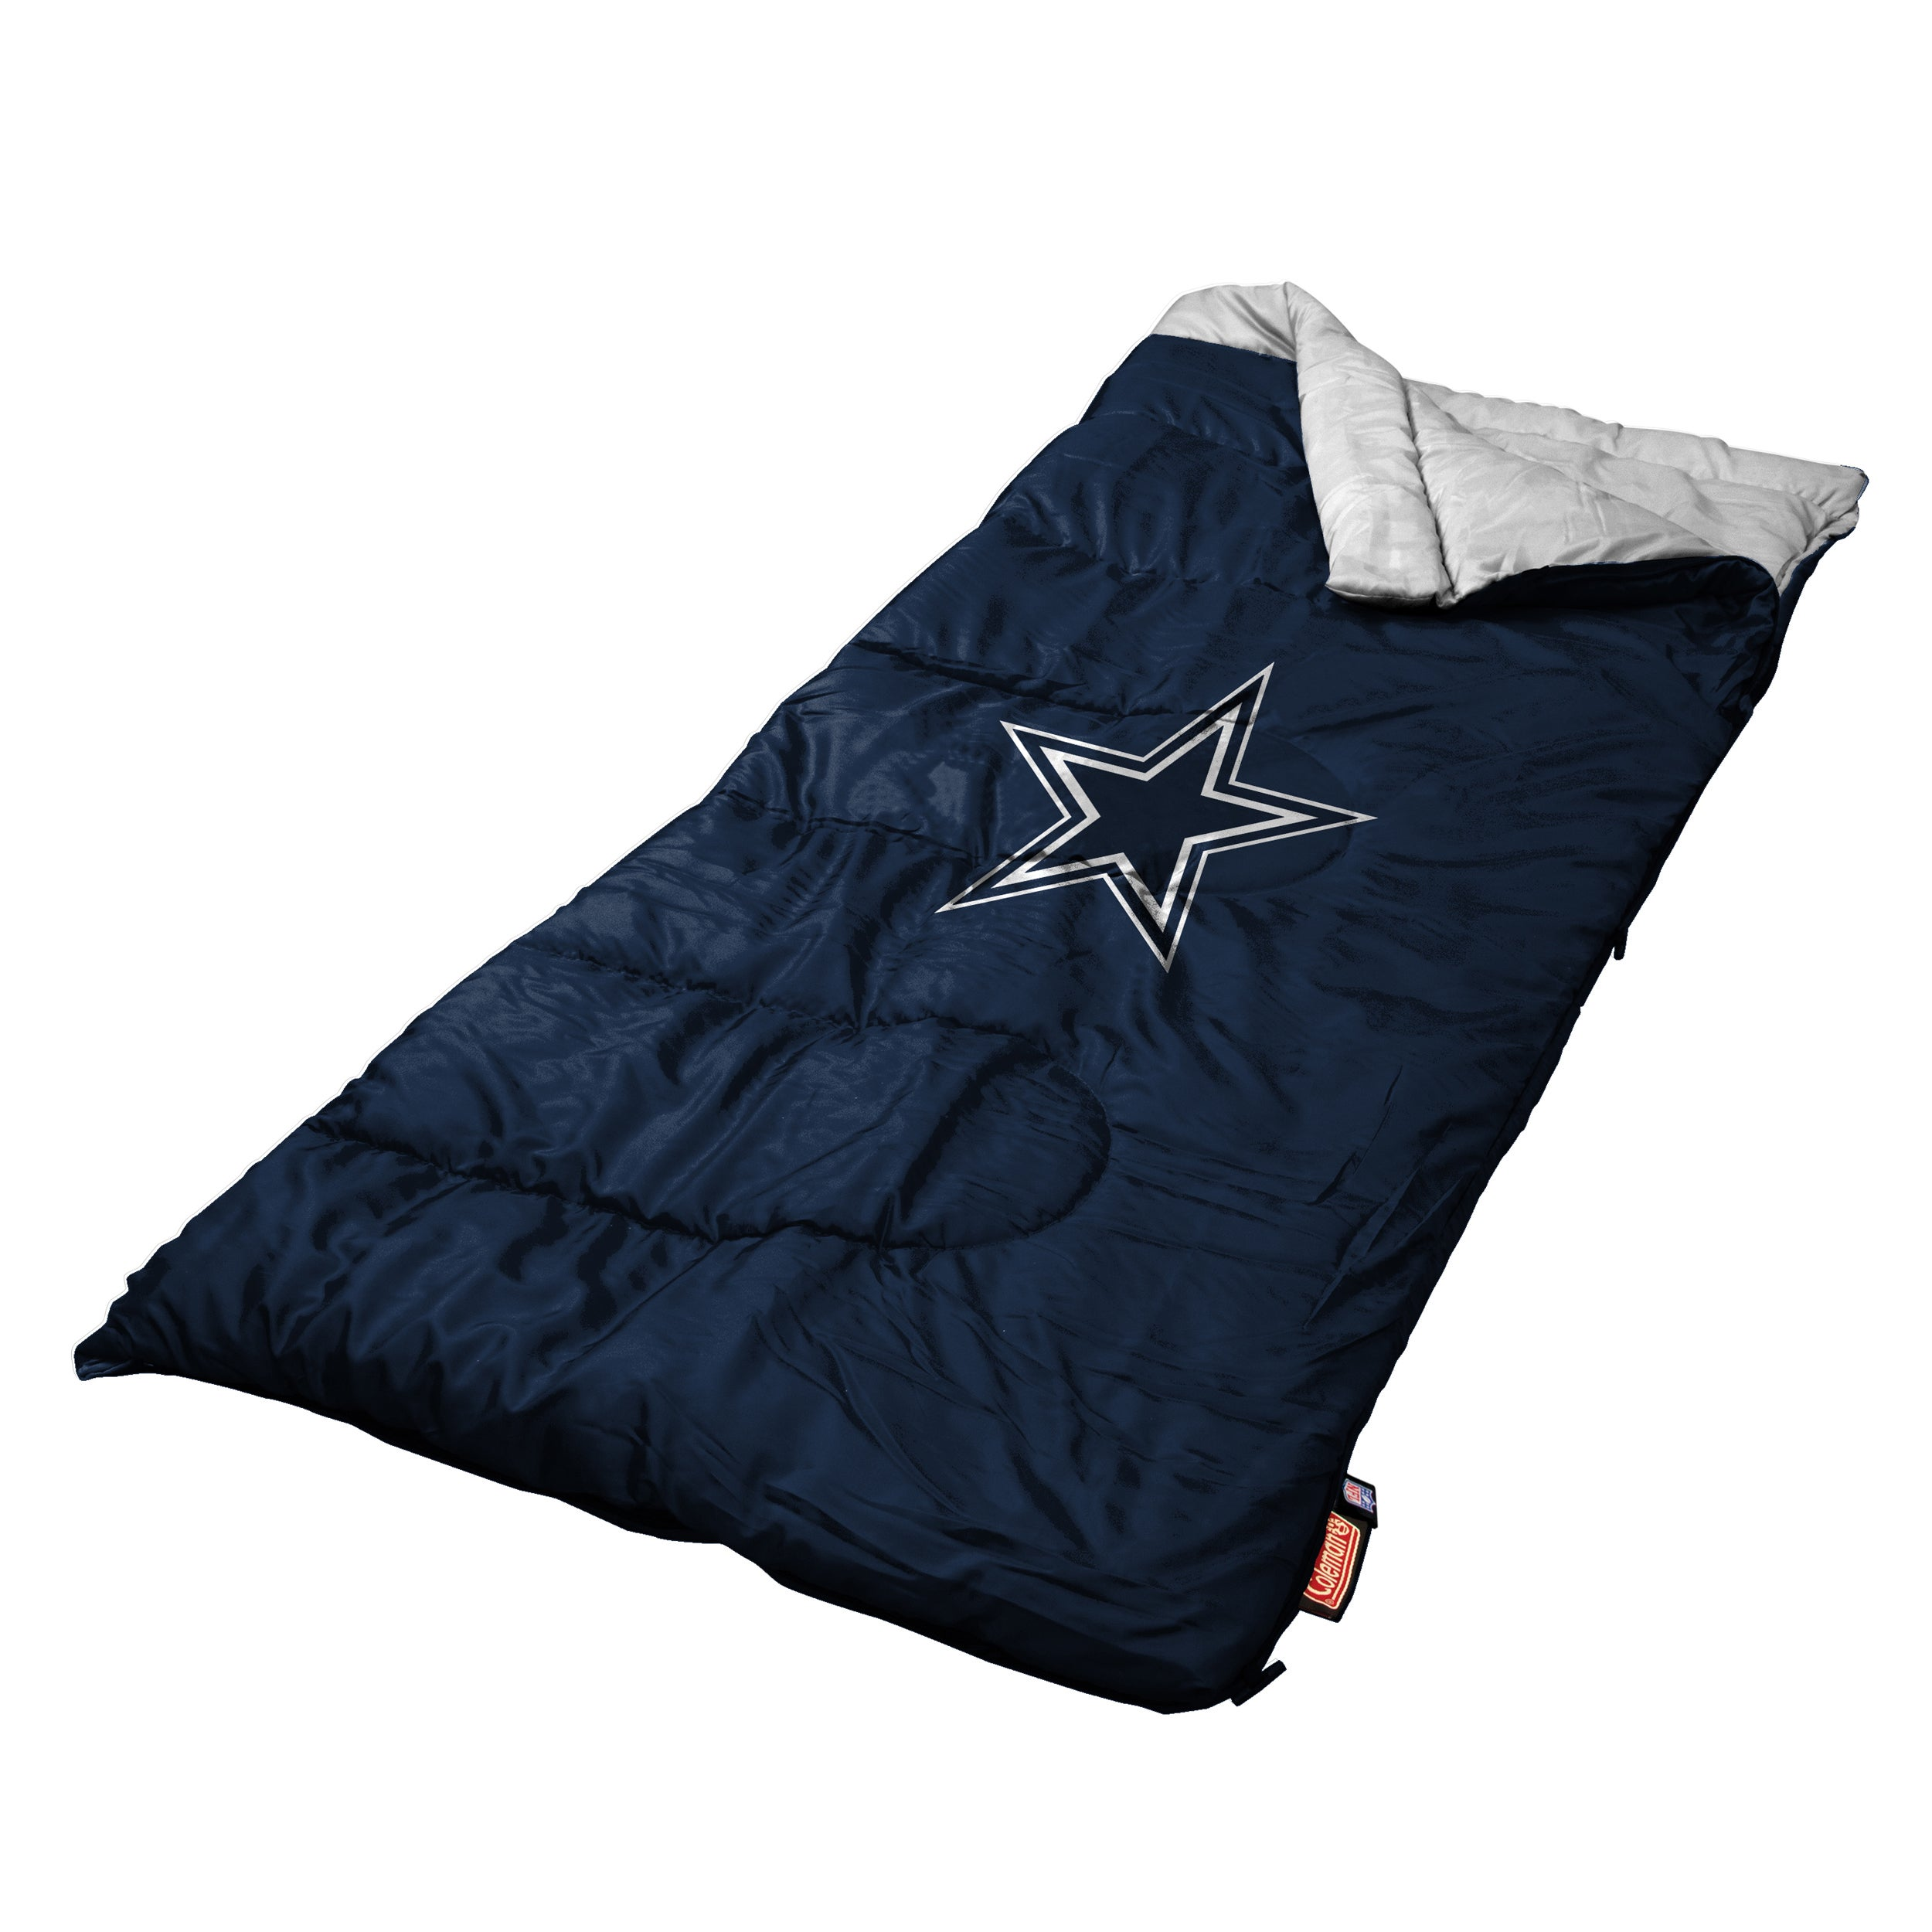 78e253aecf1 Shop Coleman NFL Dallas Cowboys Sleeping Bag - Free Shipping On Orders Over  $45 - Overstock - 9632042